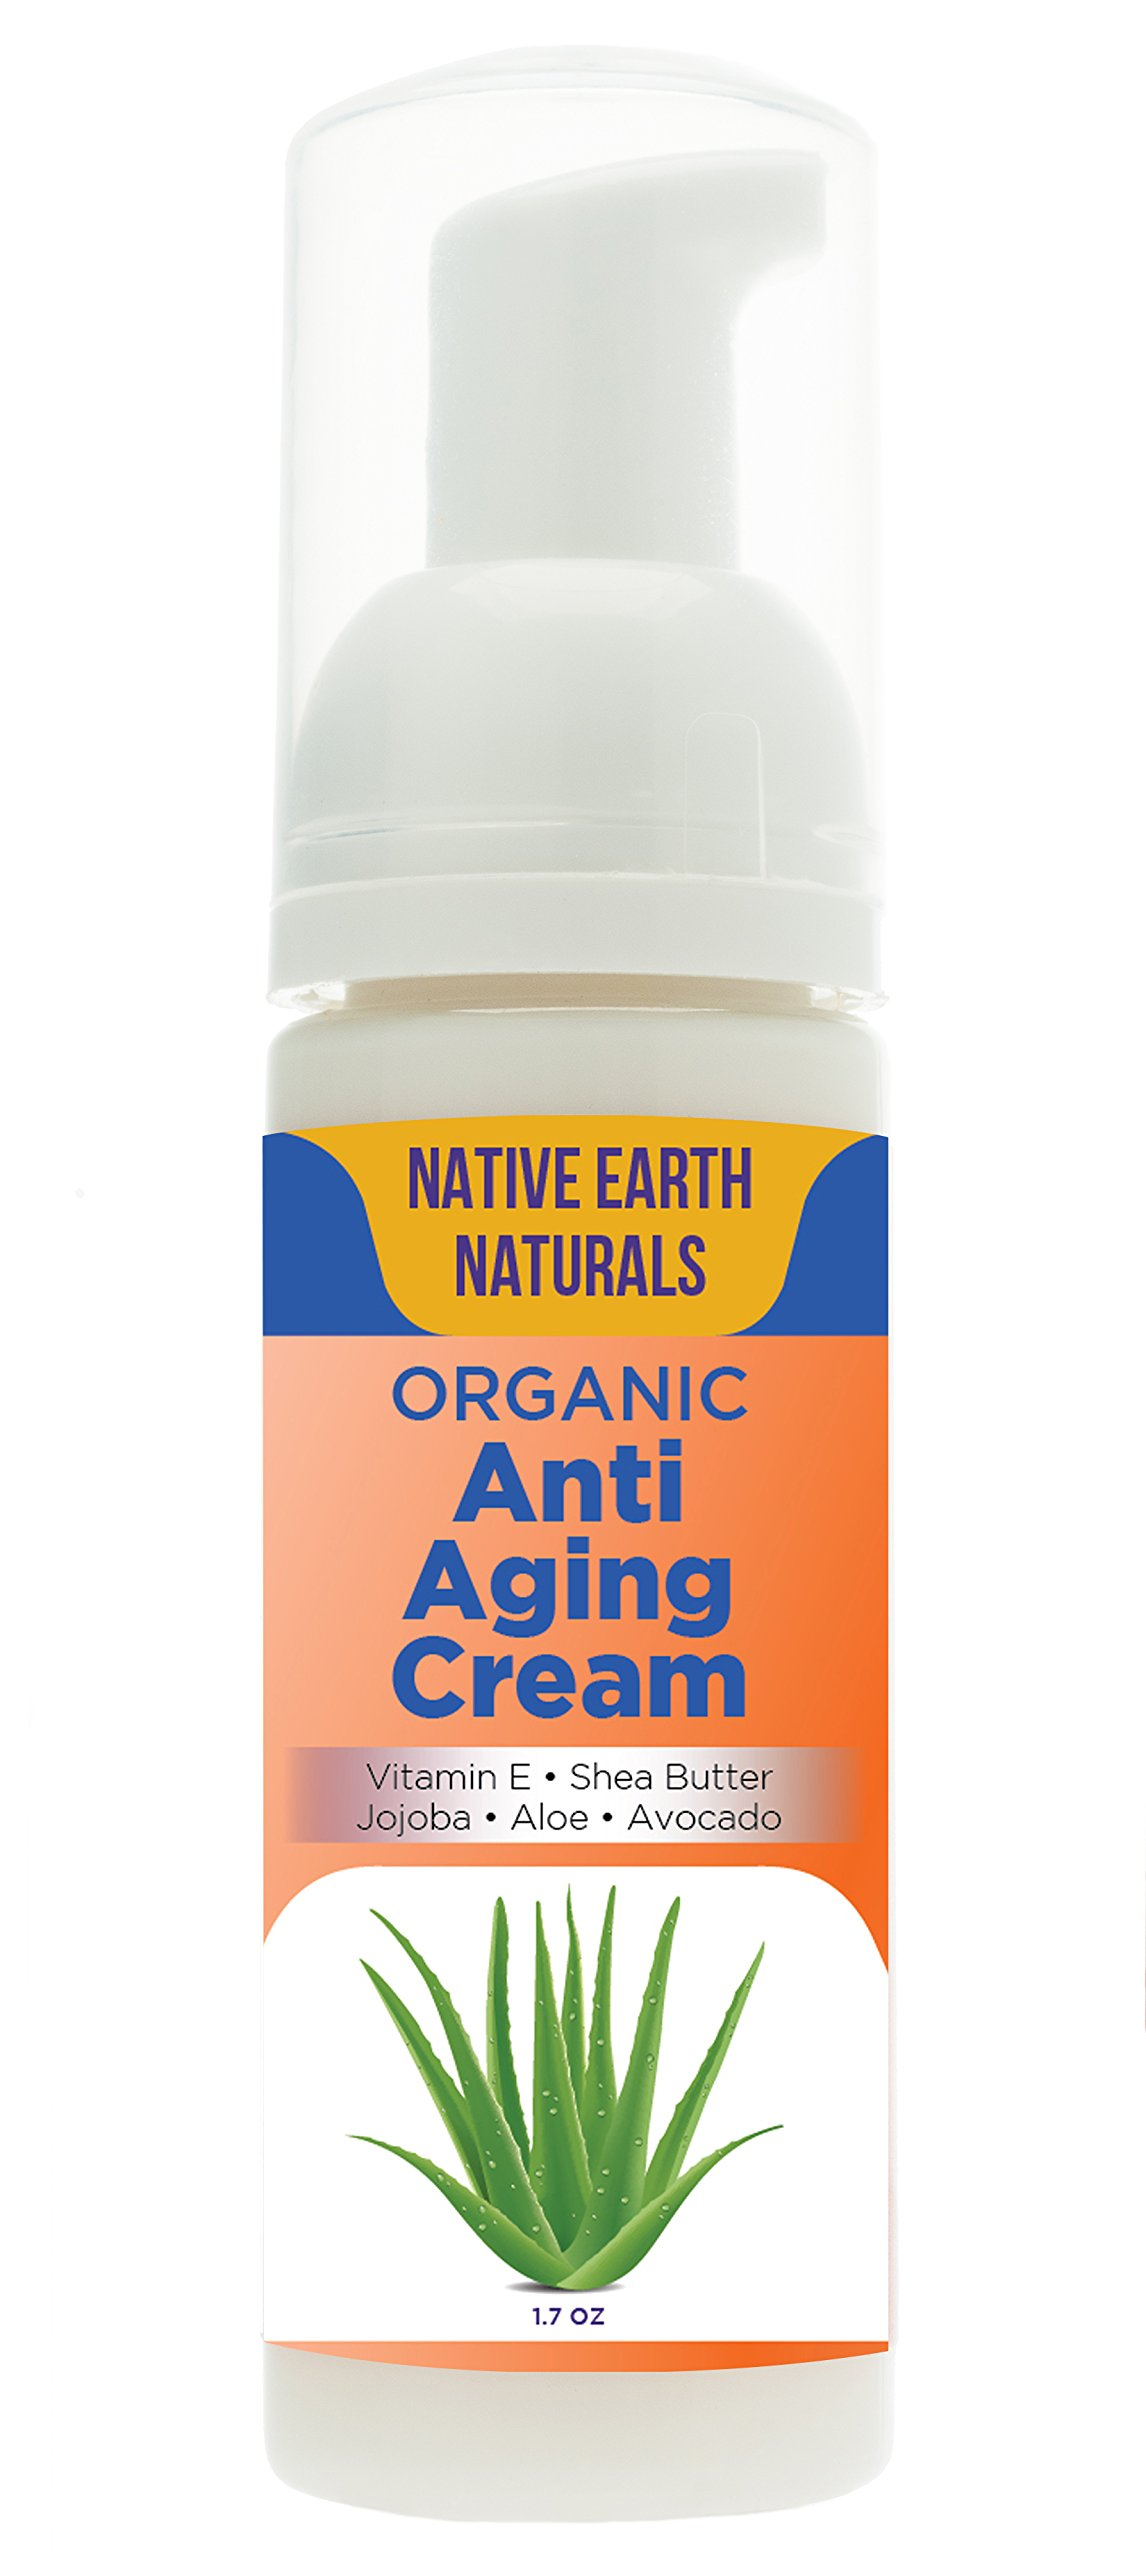 Anti Aging Cream: Feel Softer, Reduce Dark Circles, Silky Natural Glow, Balance, Tone, 98% Organic, Anti Wrinkle Cream, Moisturizer, Face/Eyes/Day/Night, Essential Oils, NEW LOOK/Same Great Product!